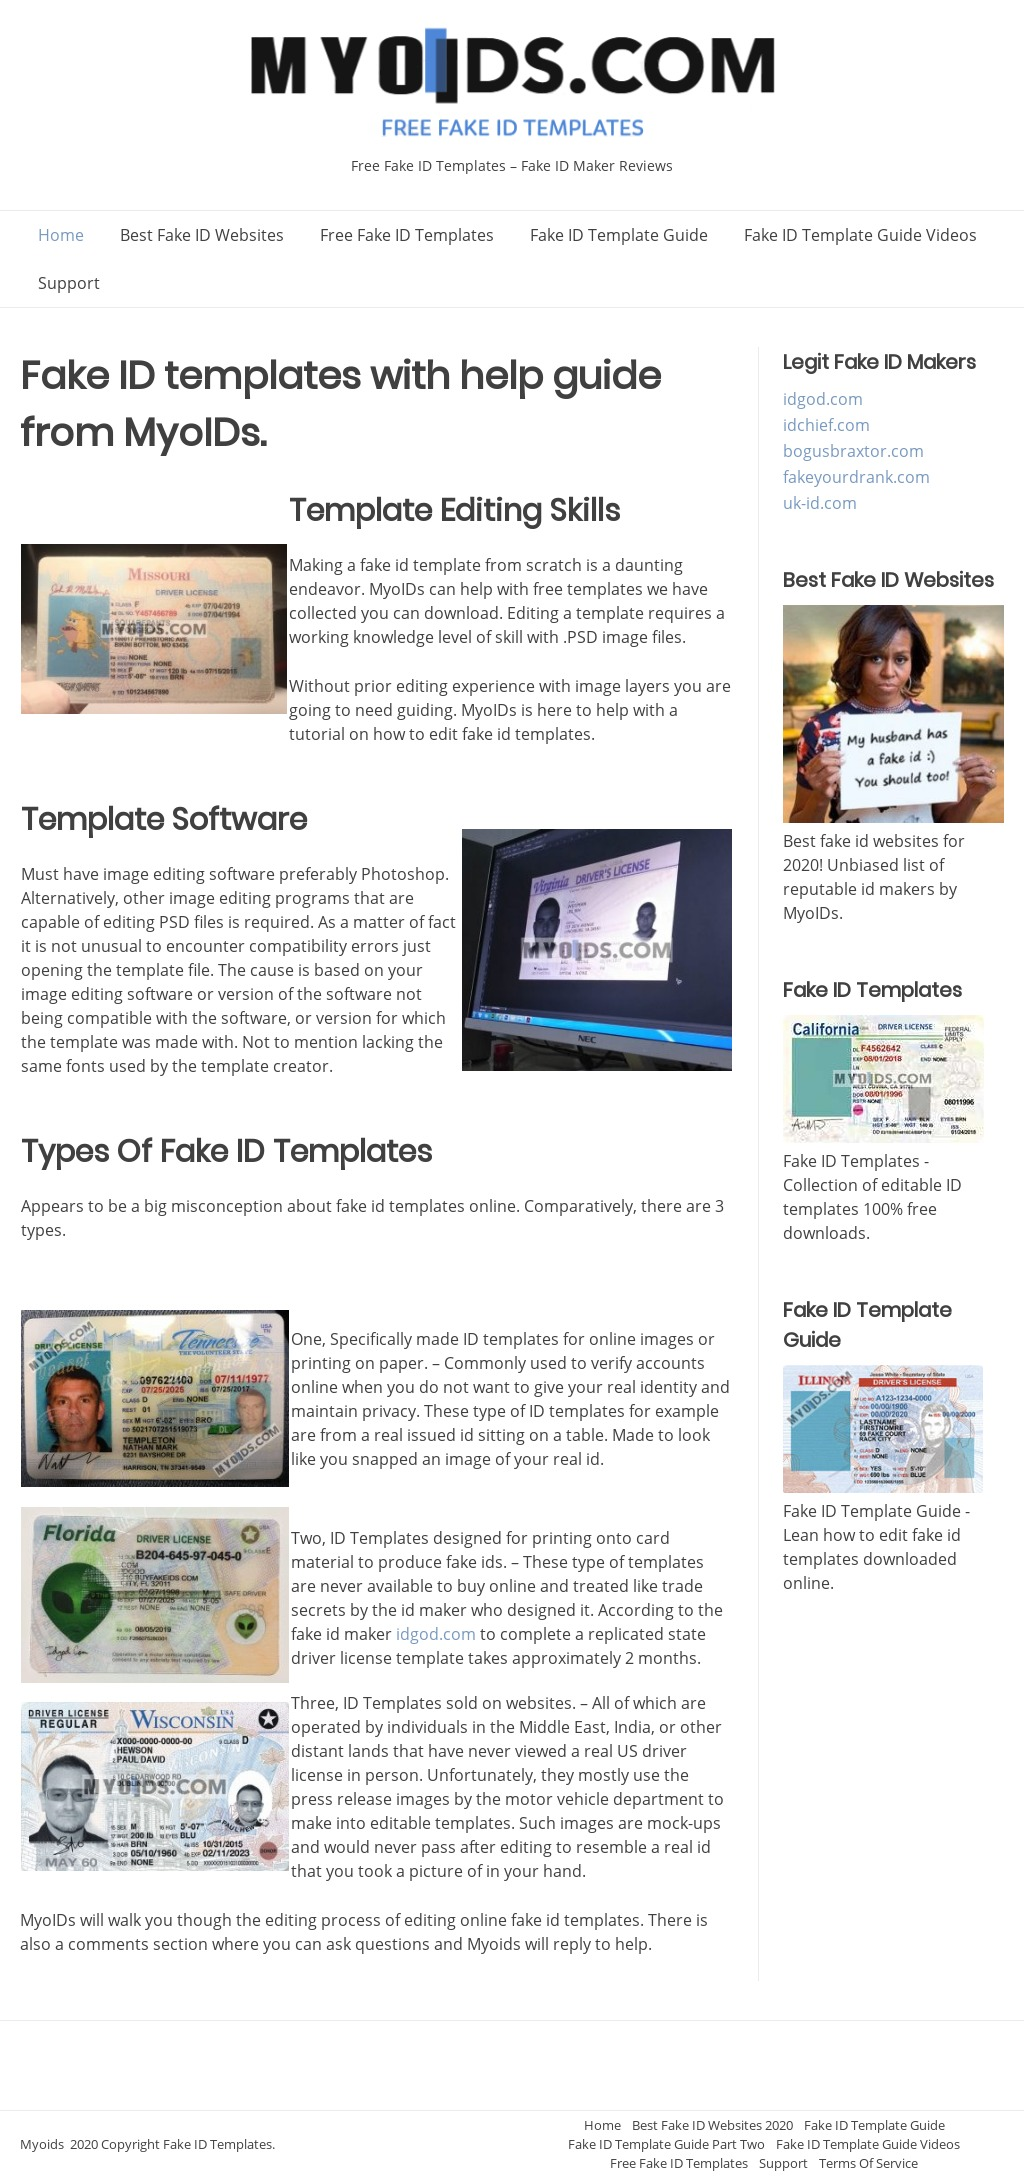 myoids.com Fake ID Template Screenshot